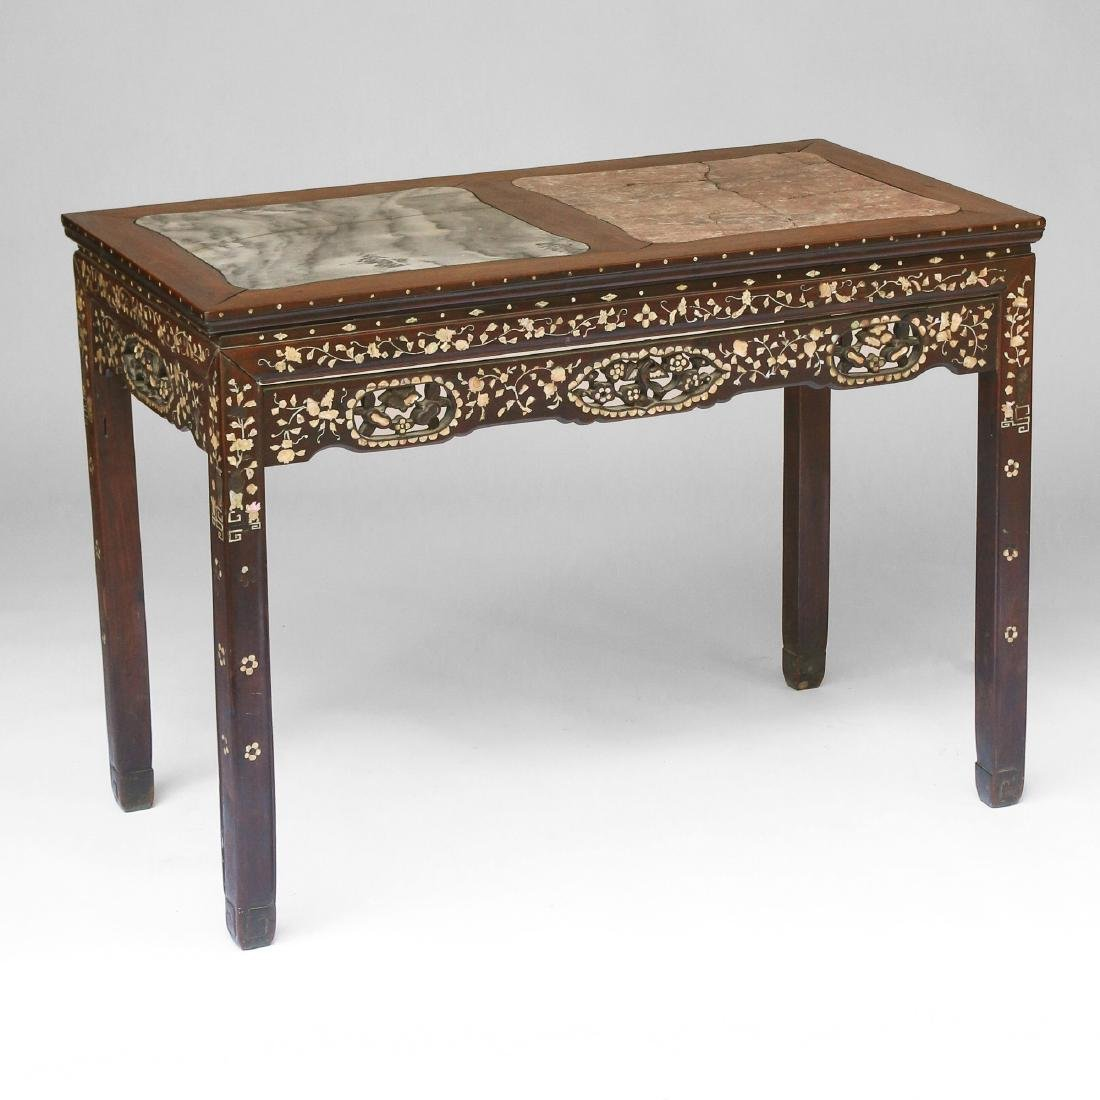 CHINESE MOTHER-OF-PEARL INLAID WRITING TABLE